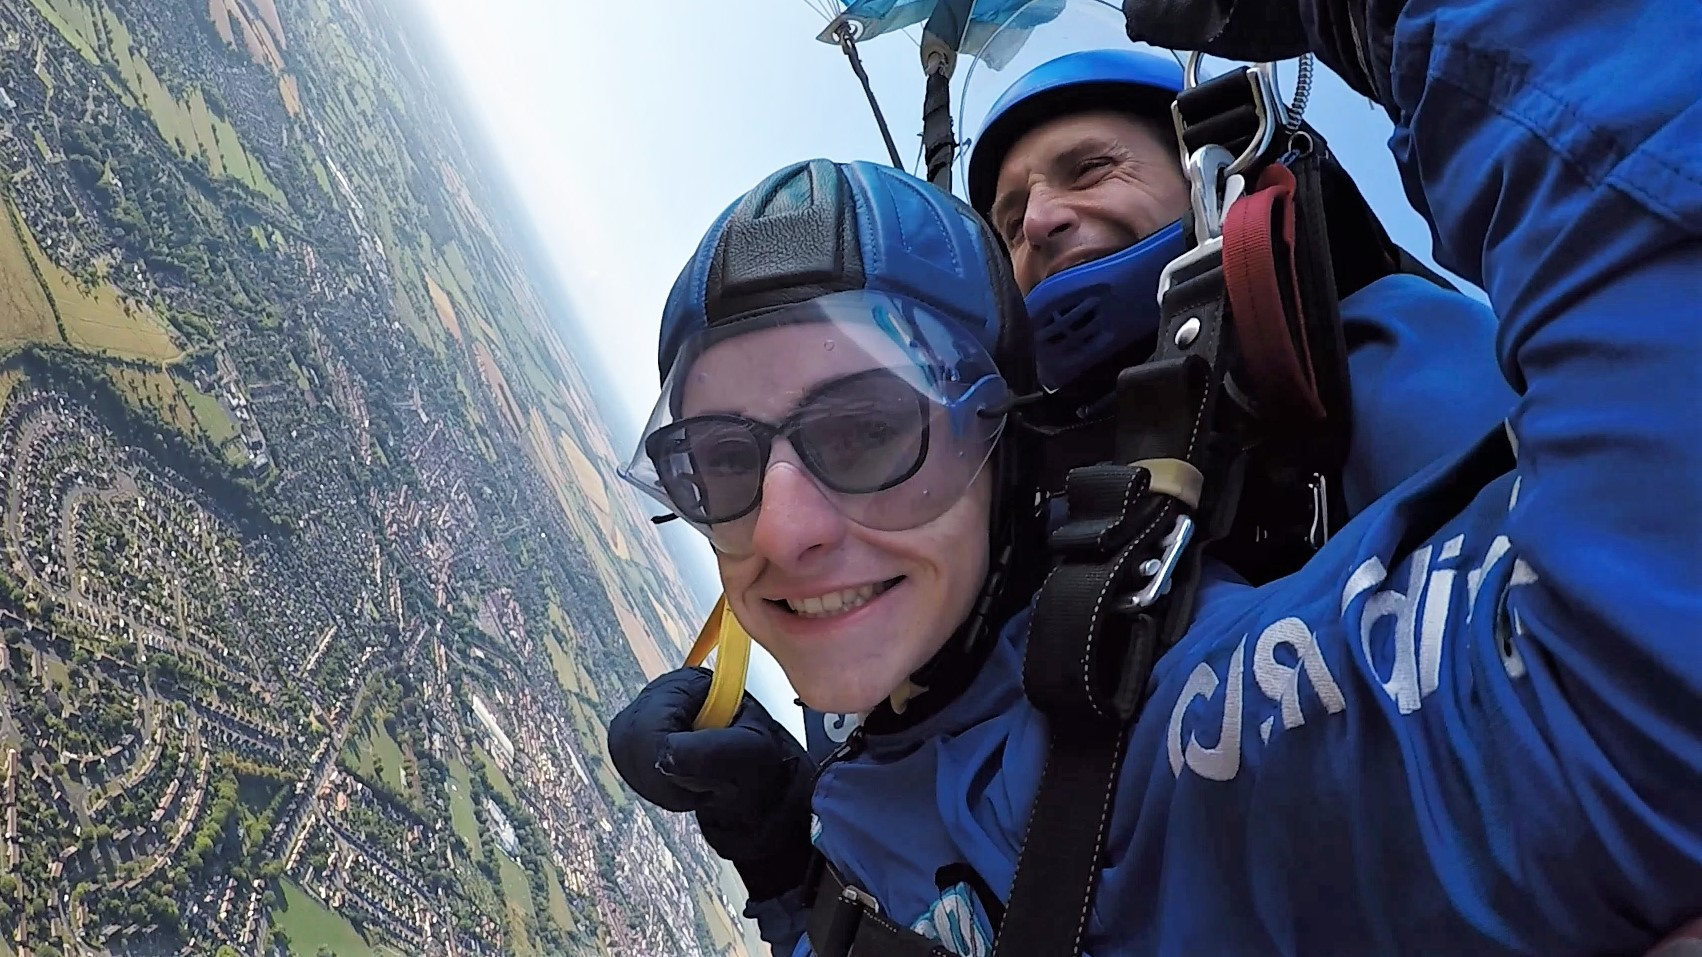 Nathan's previous sky dive for charity